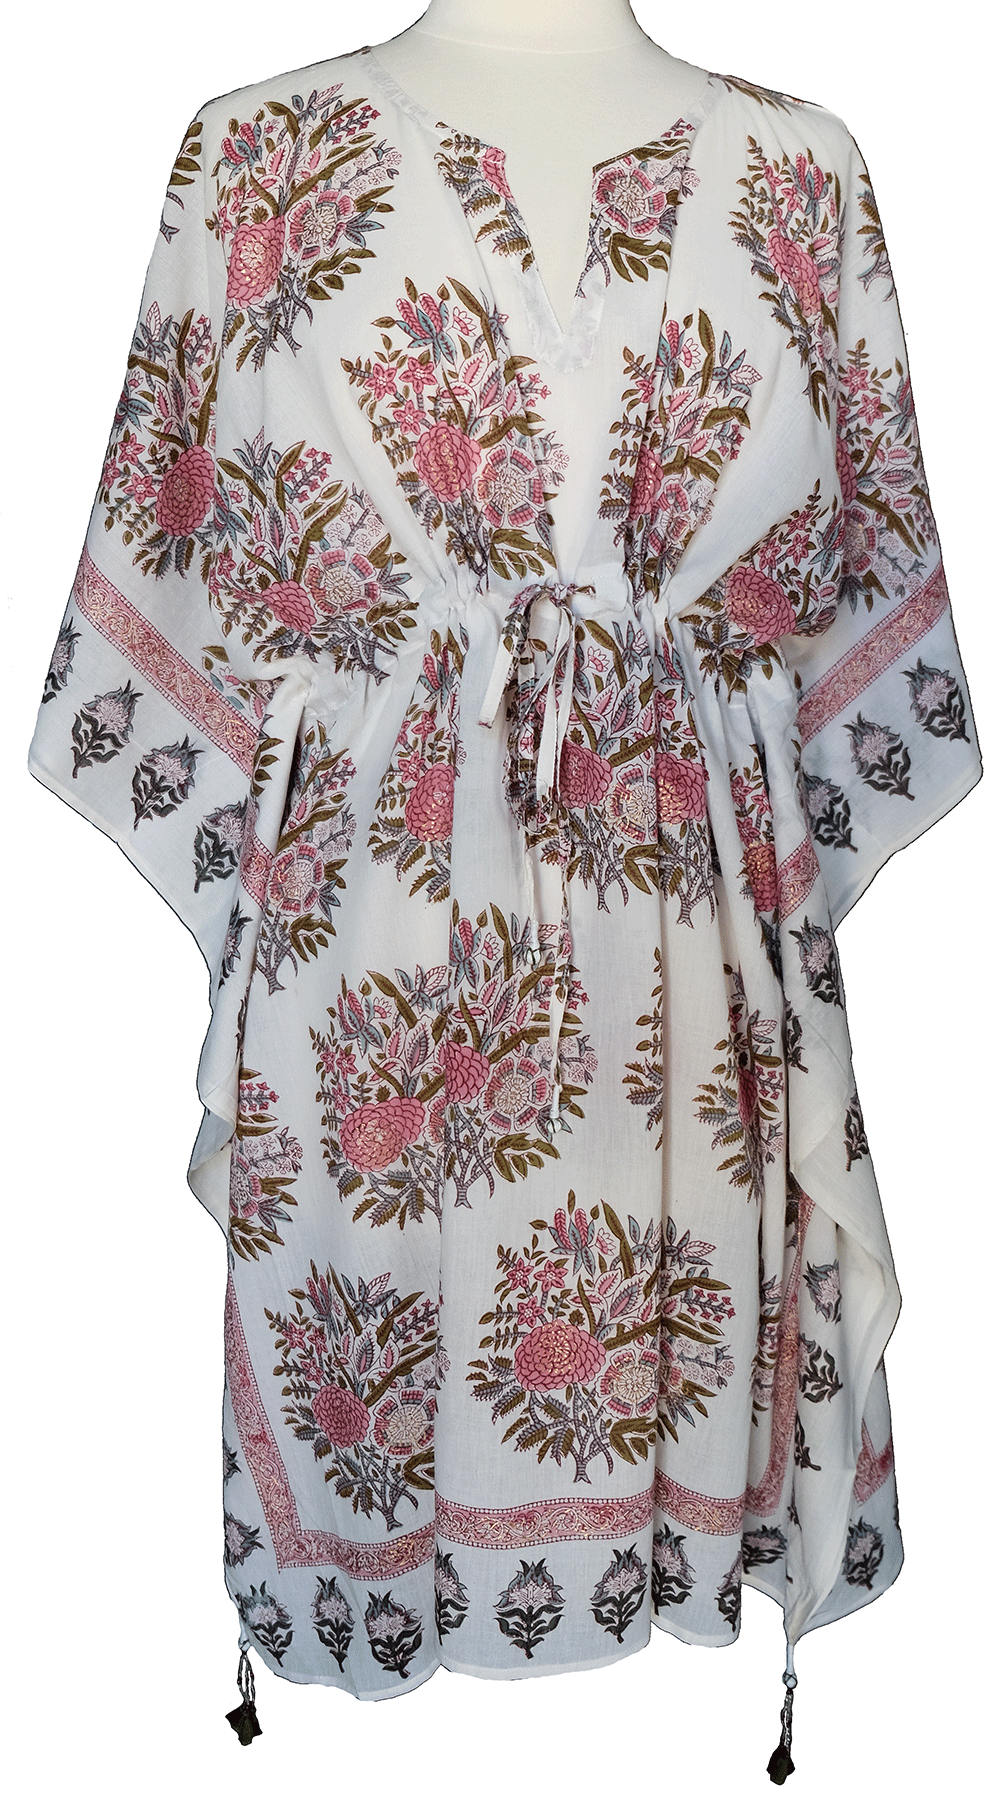 Mini Kaftan - Bouquet White - free size - Anokhi